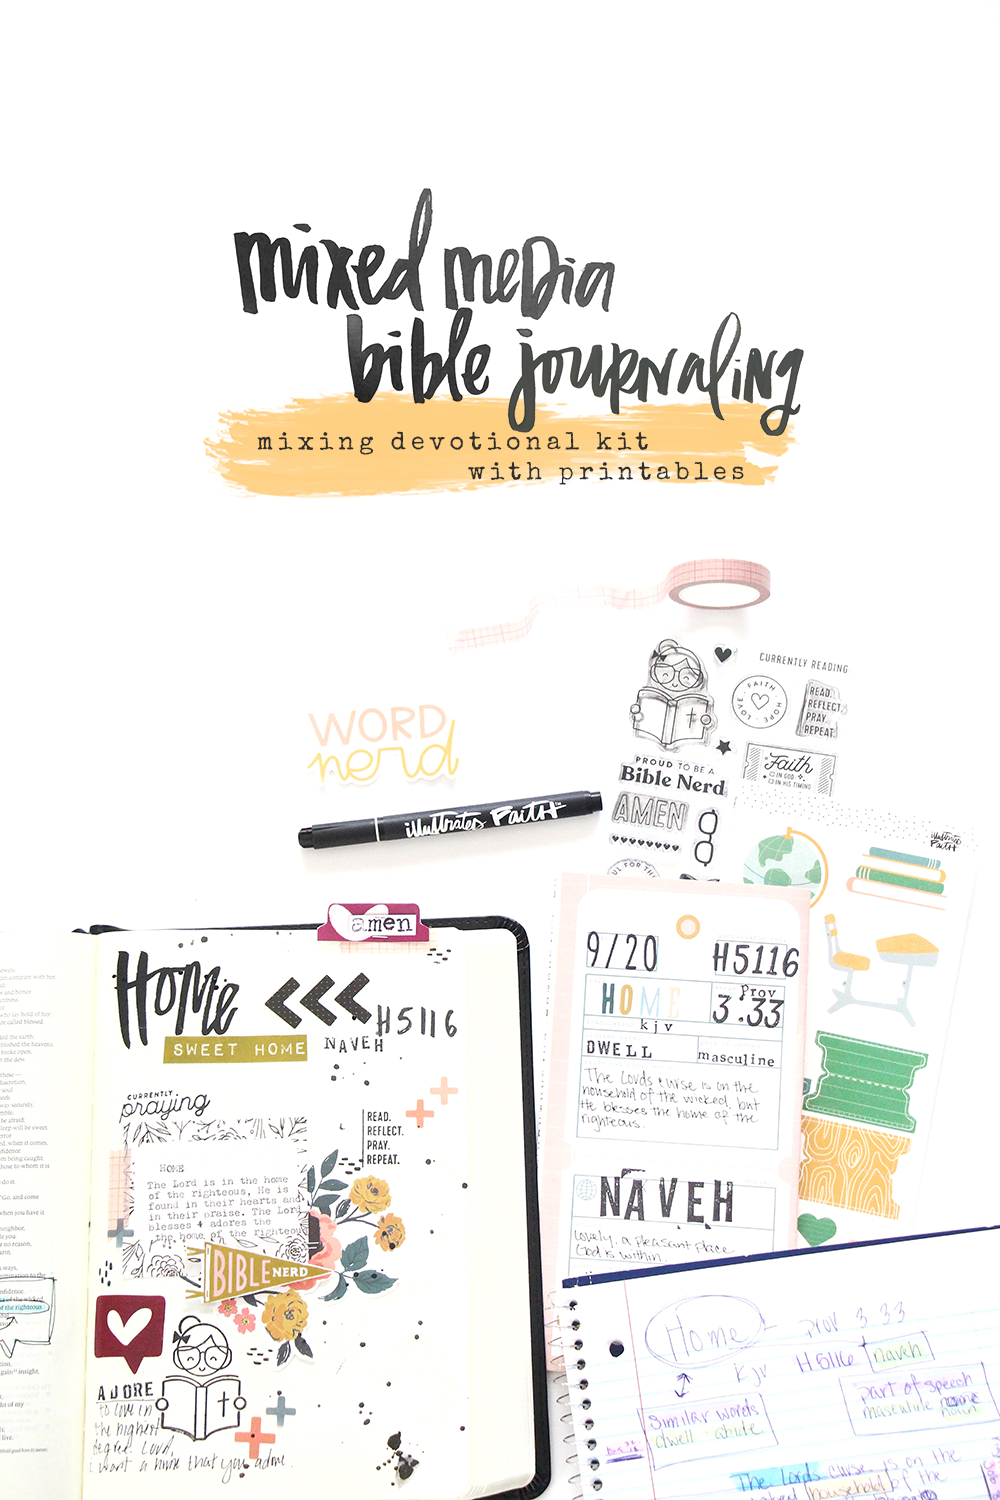 Mixed Media Bible Journaling - mixing the devotional kit with digital printables by Bekah Lynn aka Simply Bekah | Word Nerd Devotional Kit and Print & Pray digital printables | Defining the word HOME